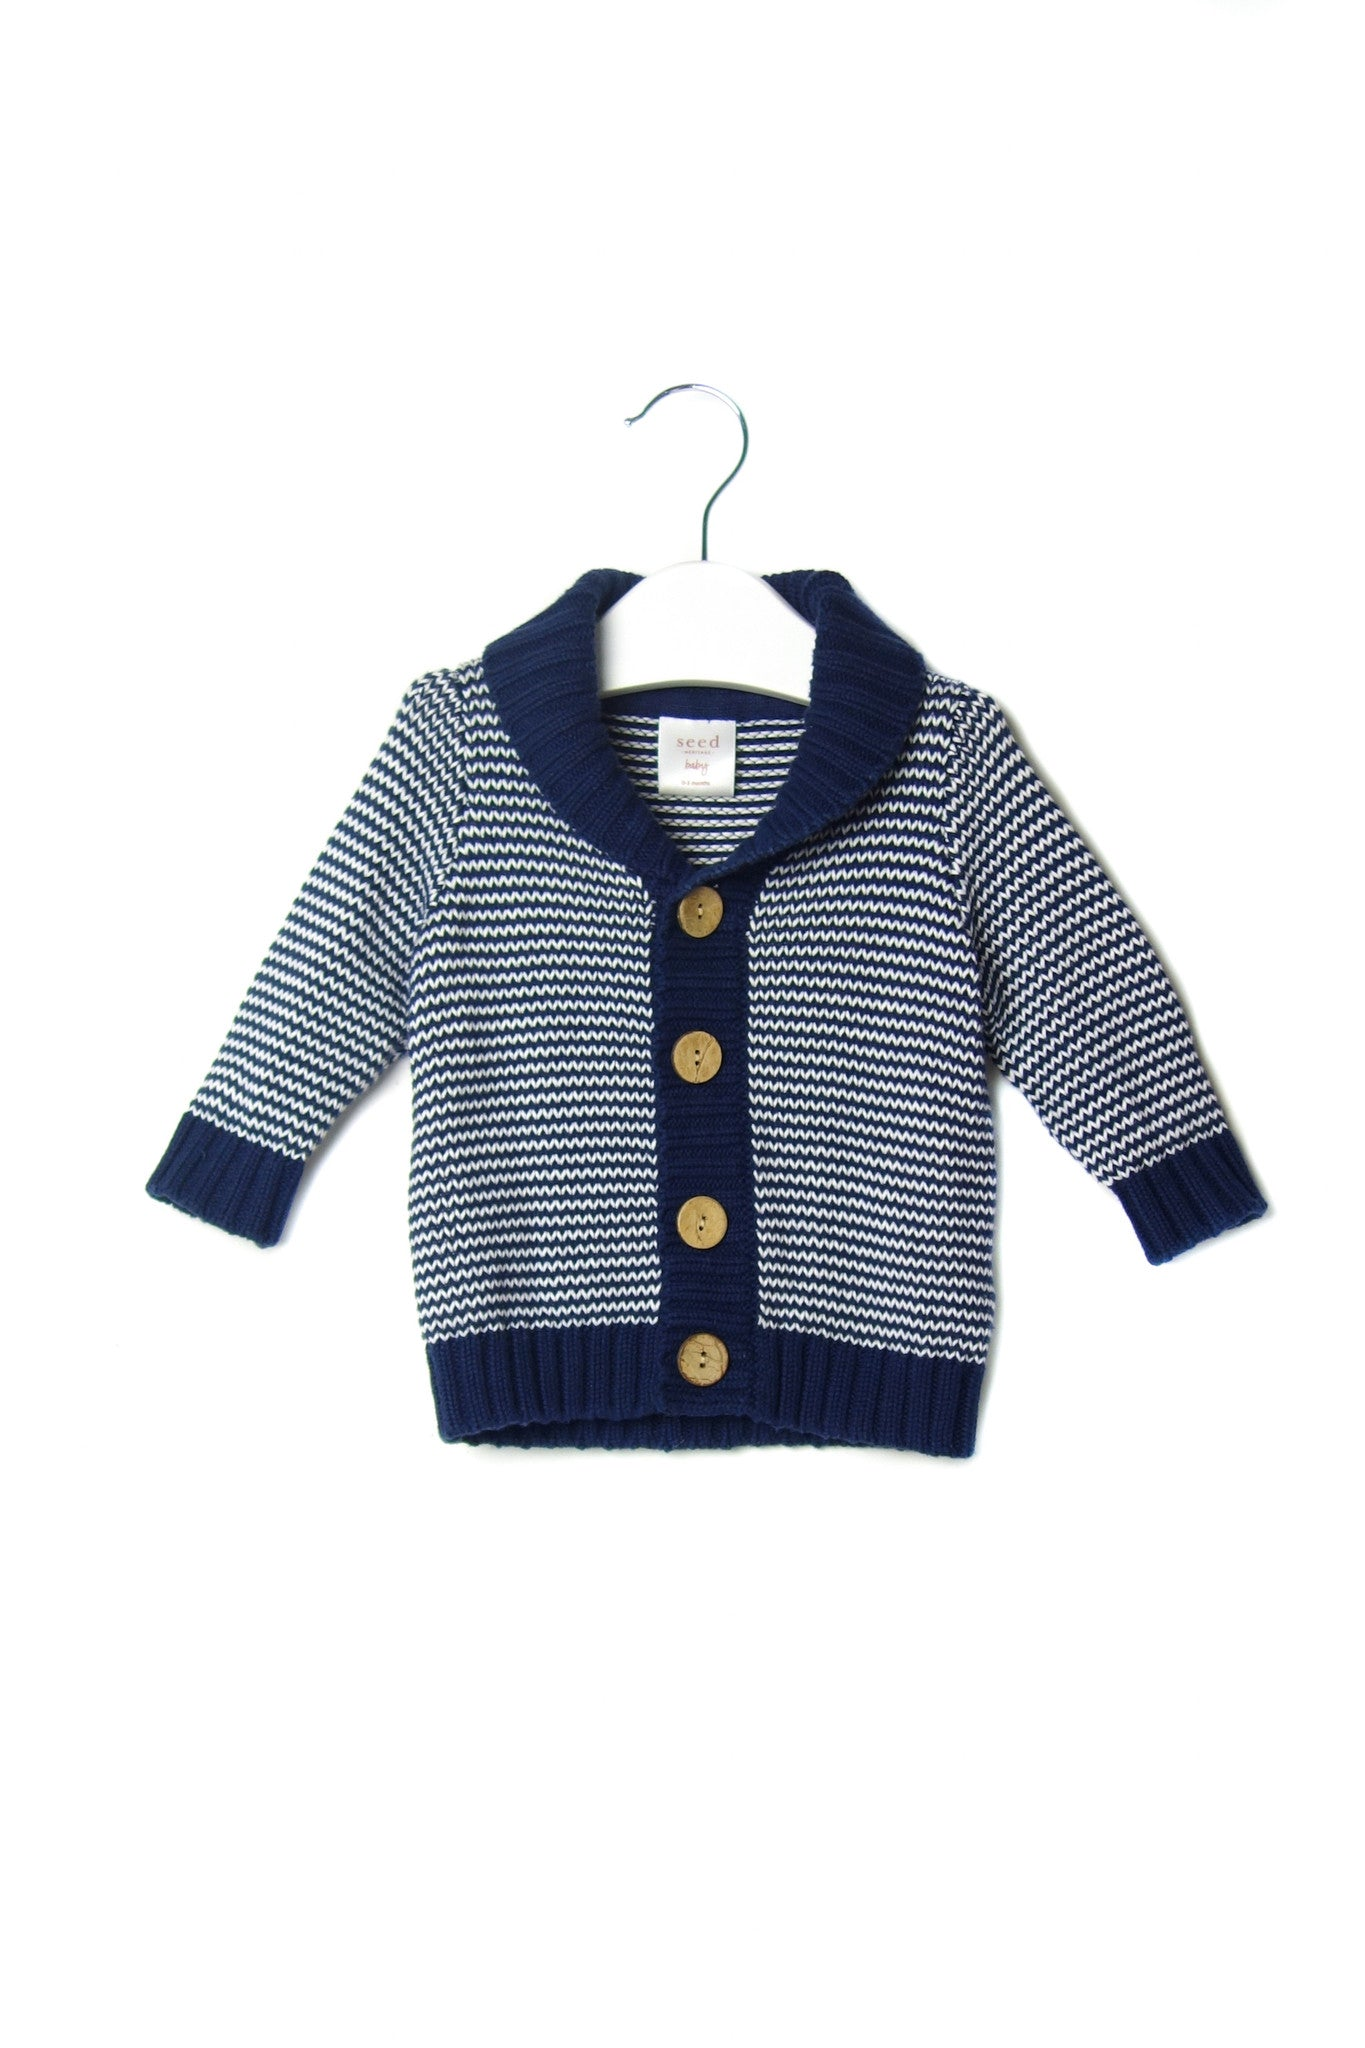 10002016 Seed Baby~Cardigan 0-3M at Retykle